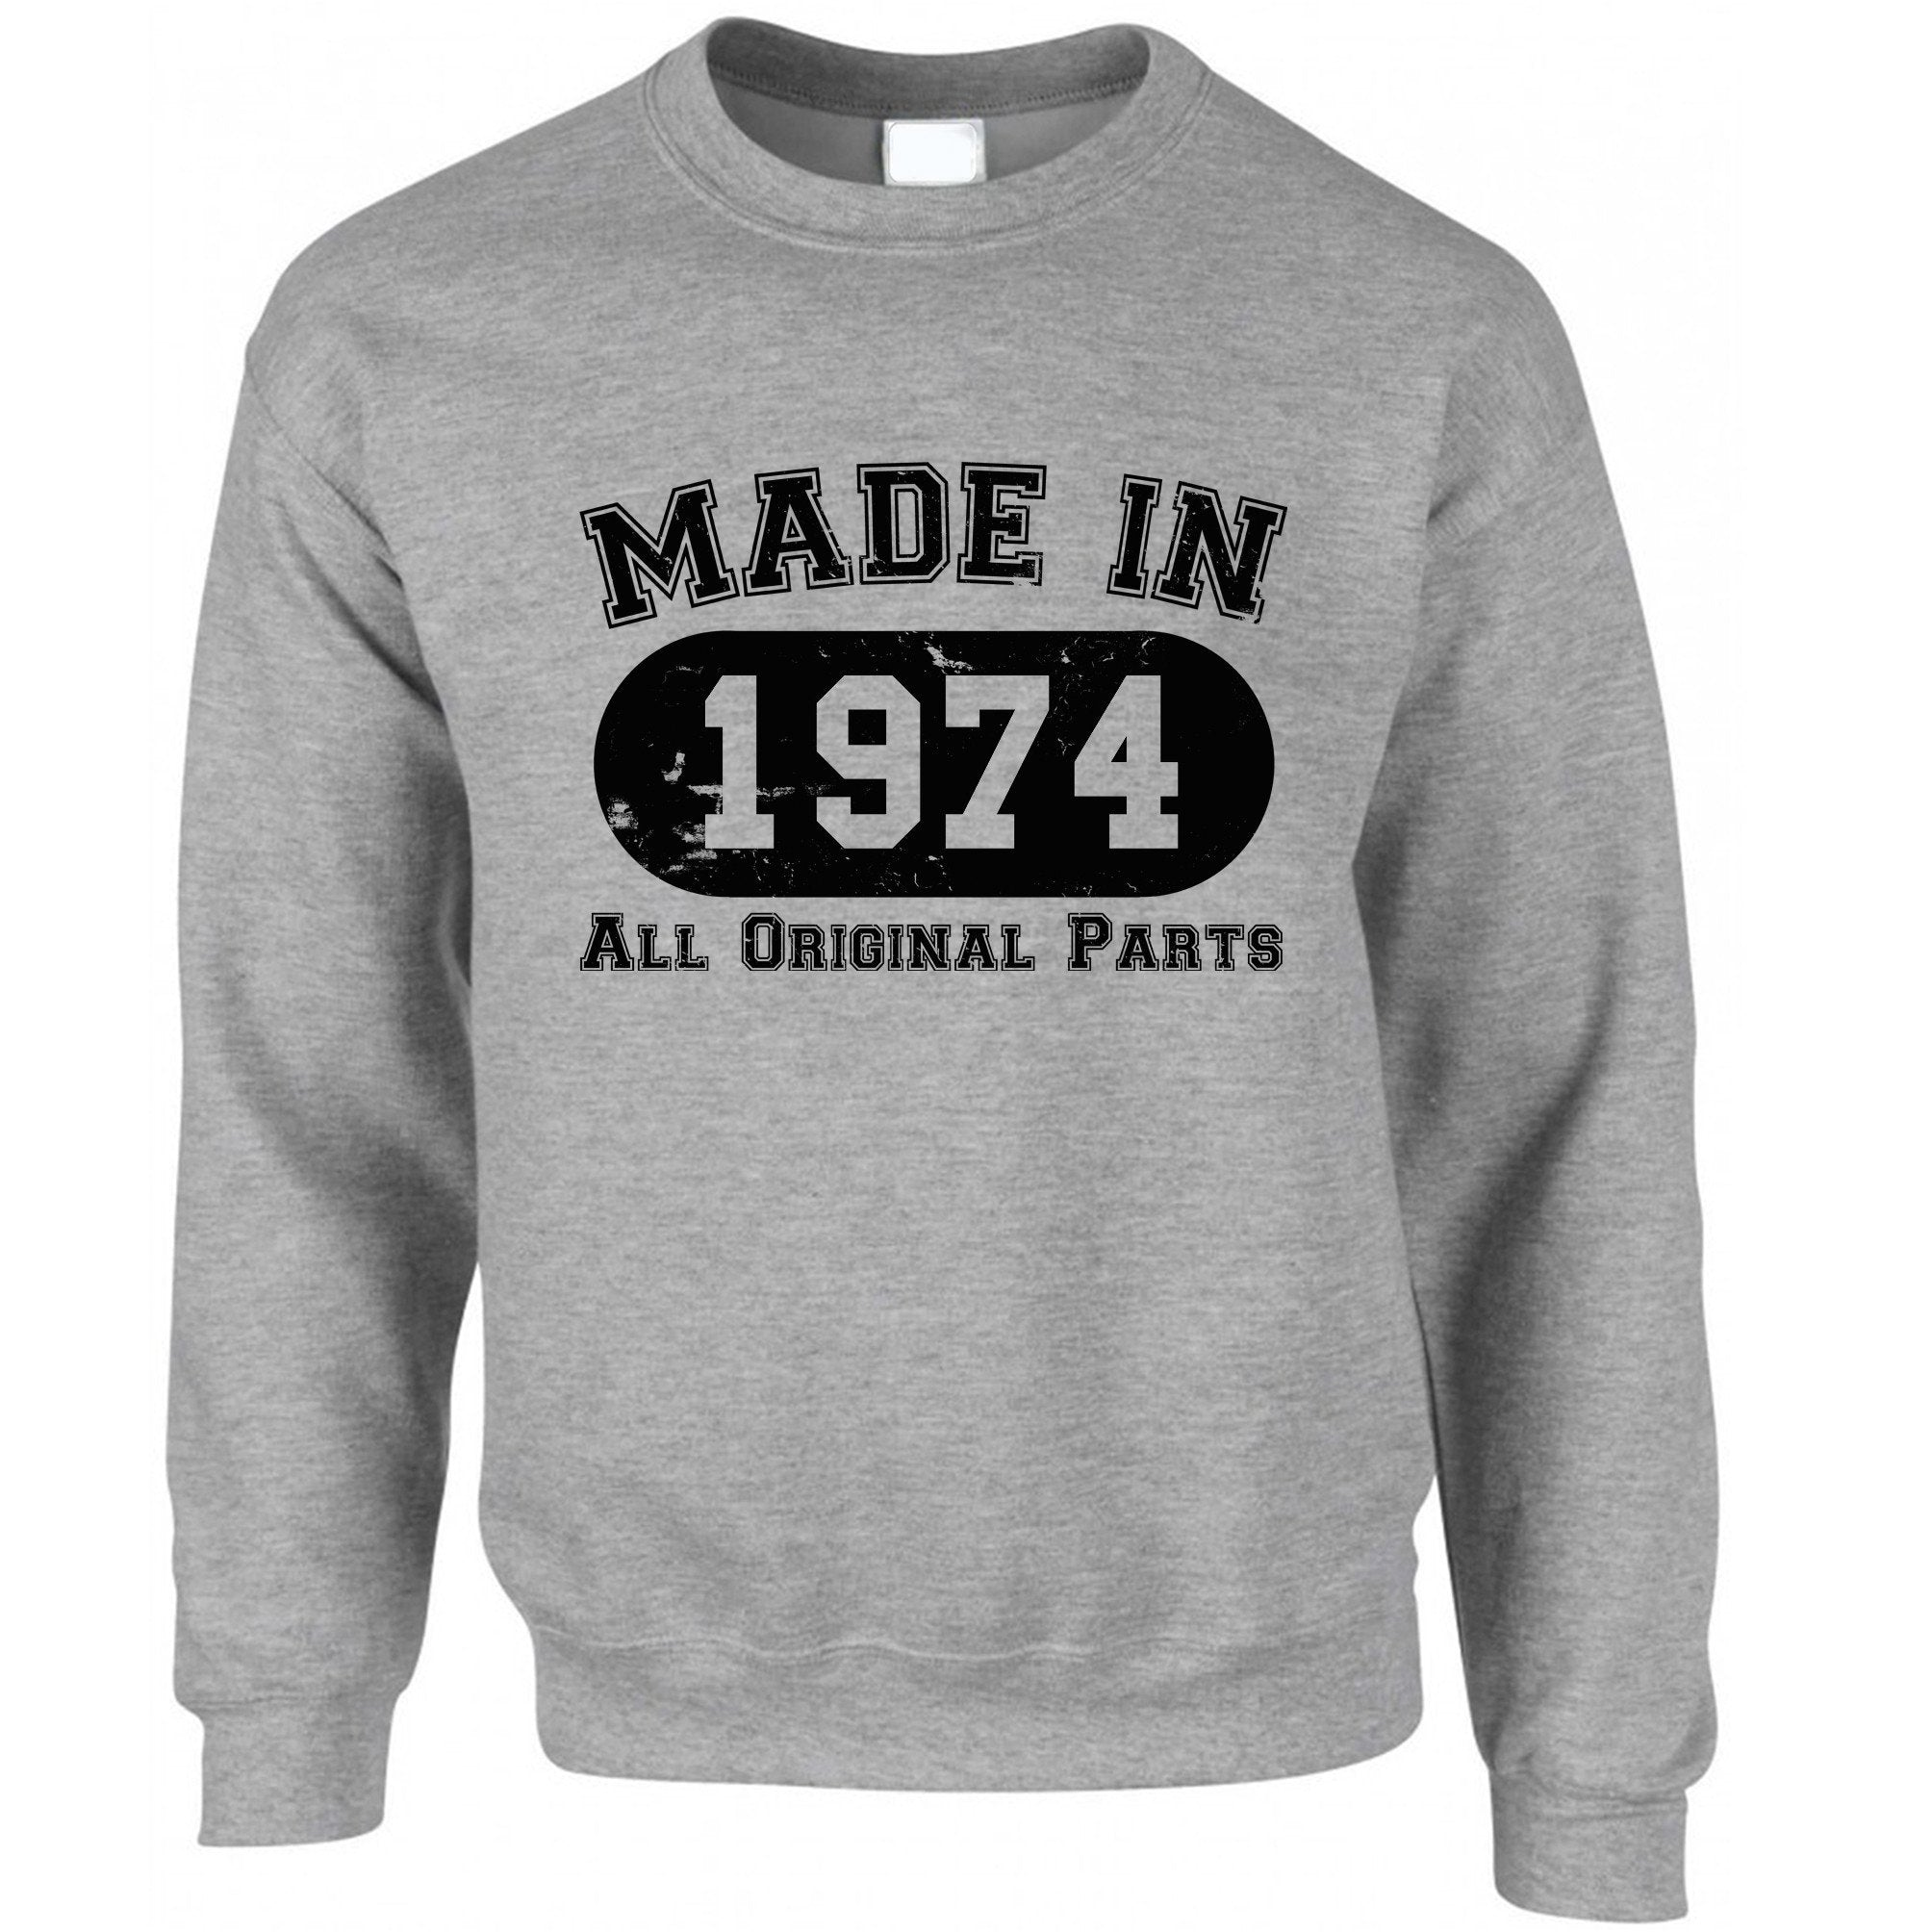 Made in 1974 All Original Parts Sweatshirt Jumper [Distressed]